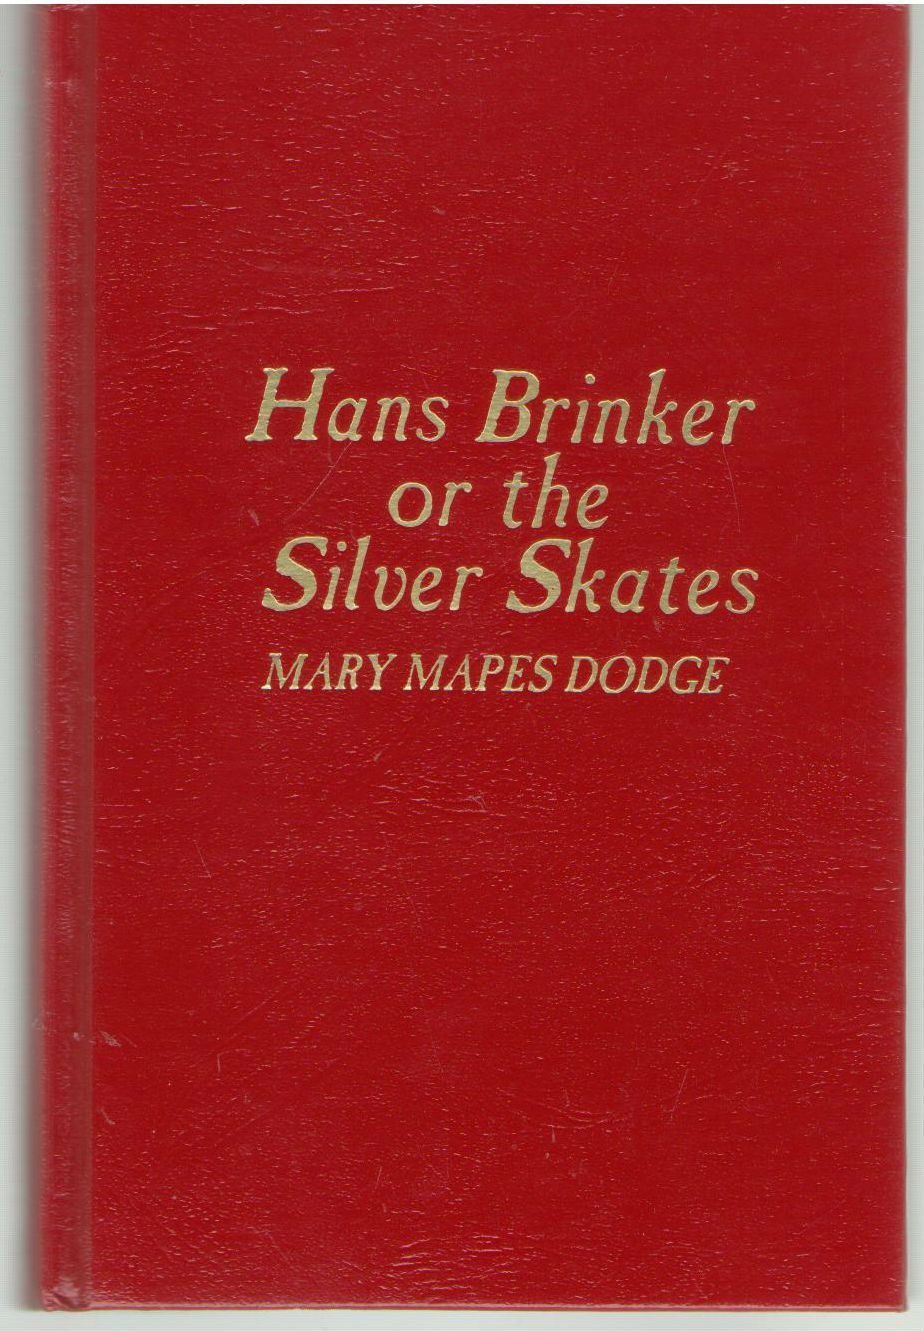 Hans Brinker, or the Silver Skates, Dodge, Mary Mapes